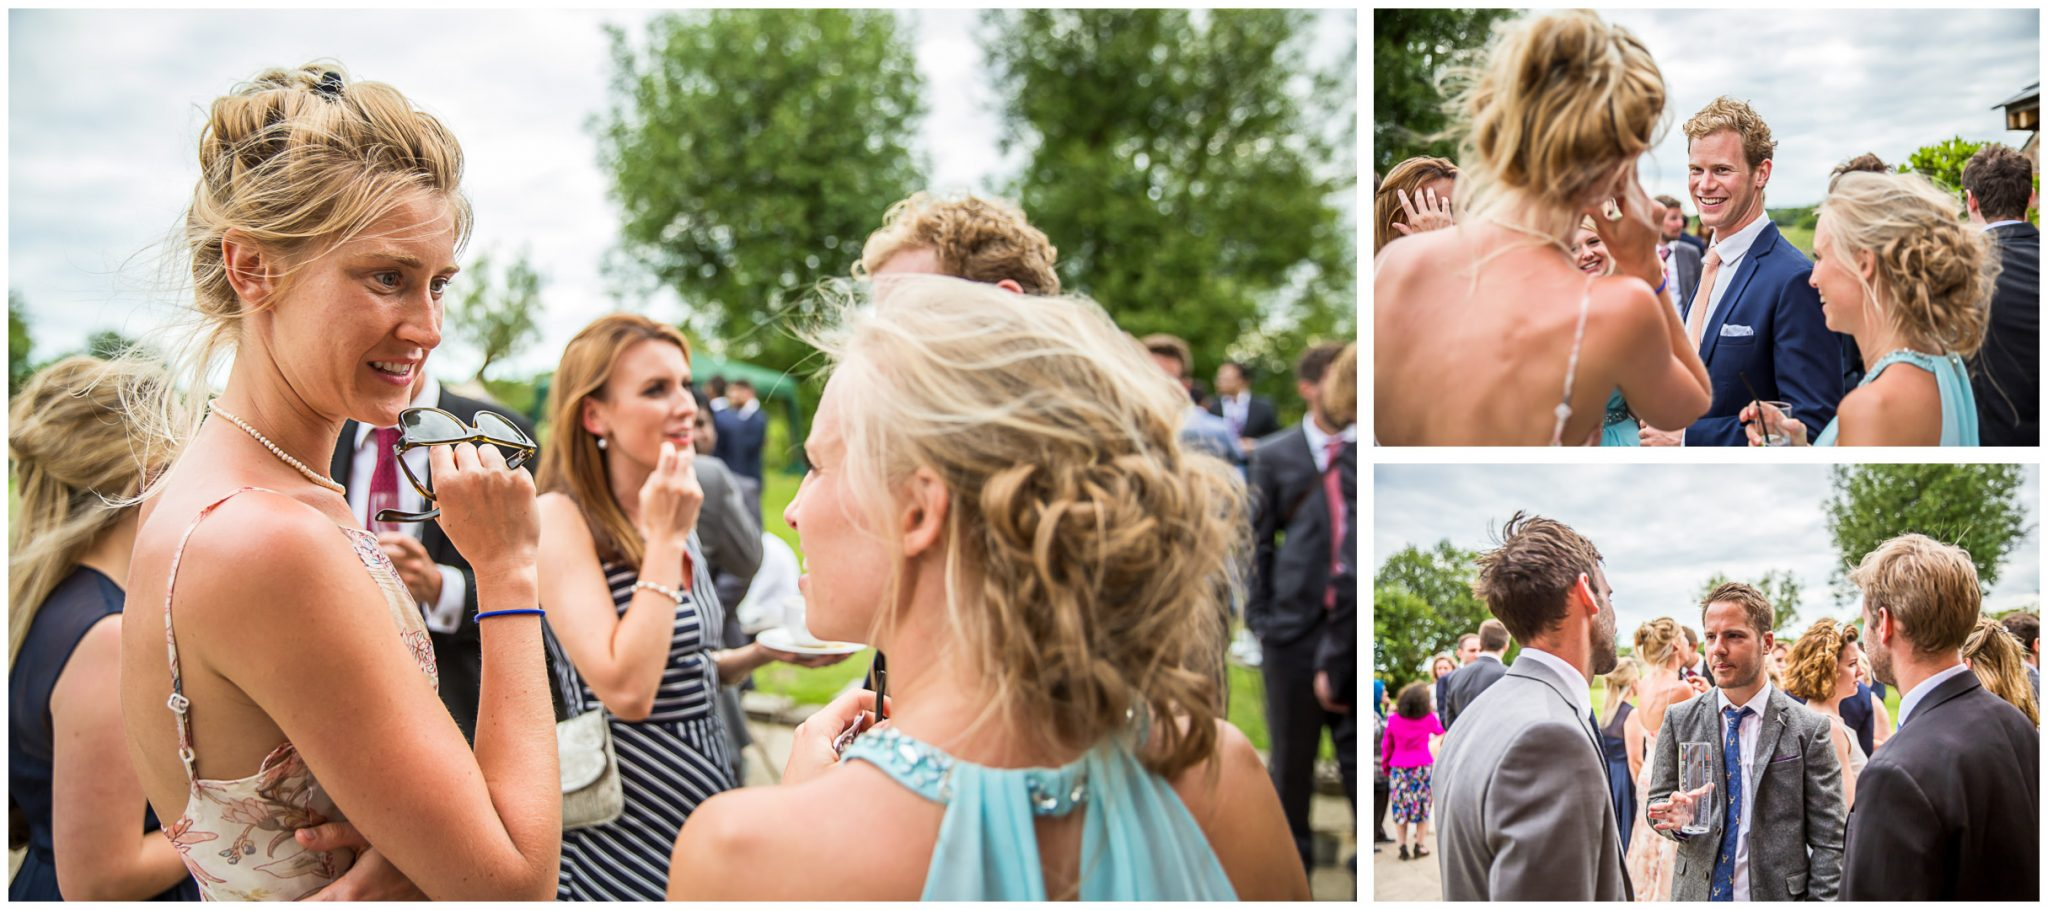 Sopley Mill Summer wedding candid photos of guests